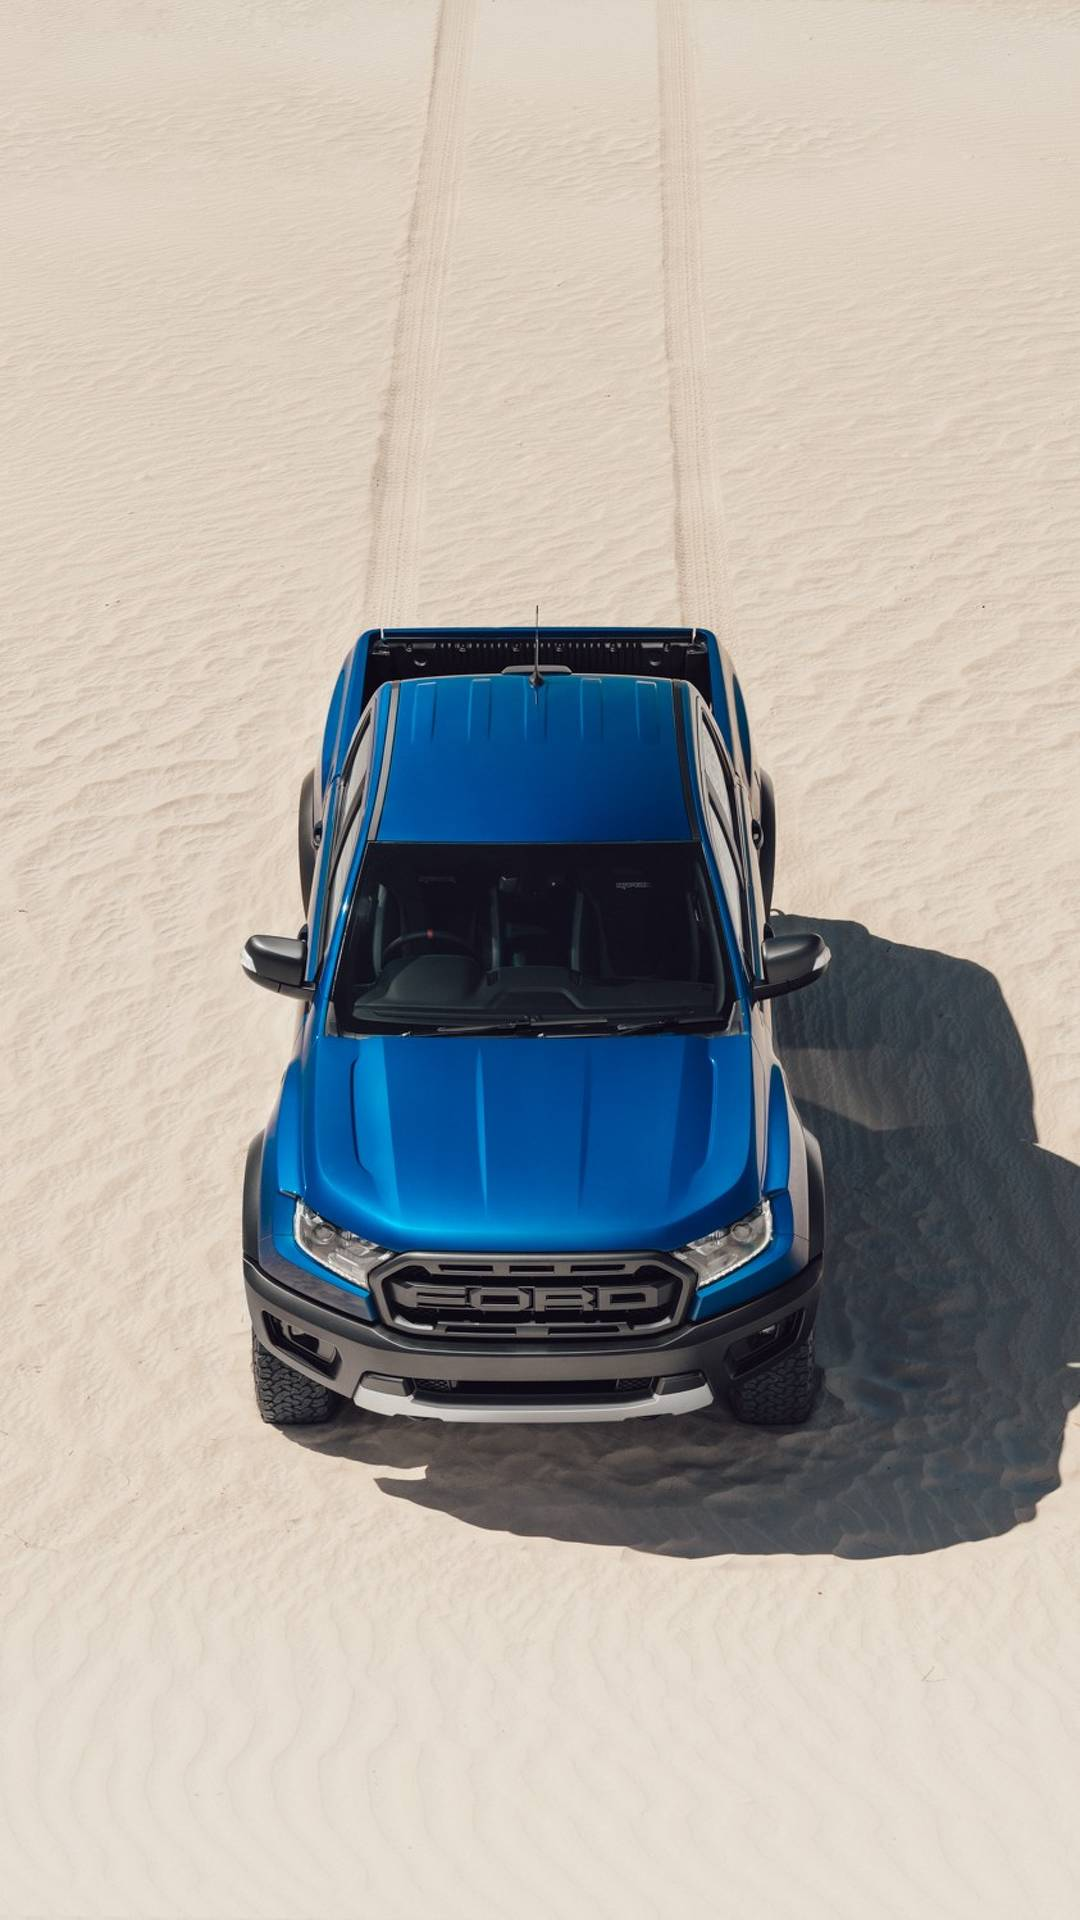 Ford Ranger Raptor Debuts With 210 Biturbodiesel Horsepower